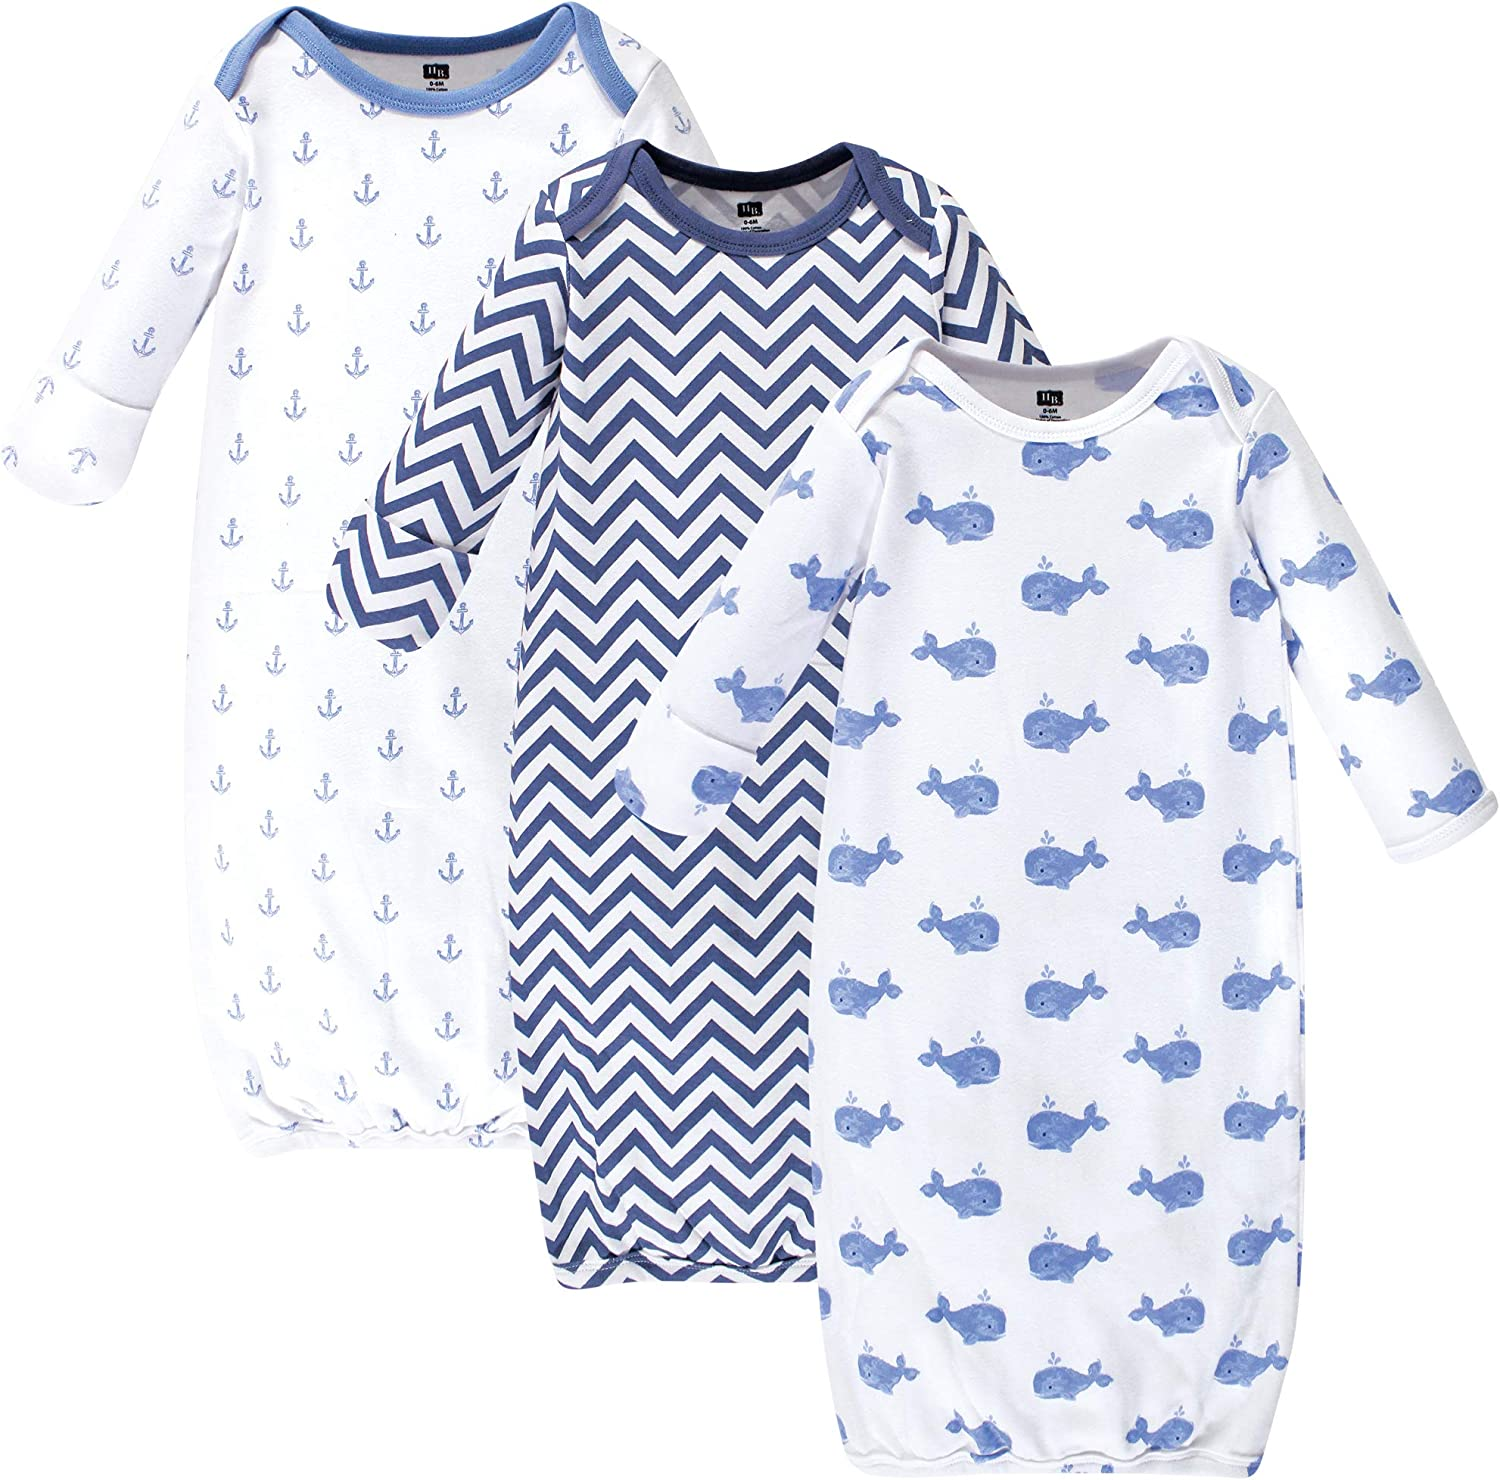 Hudson baby Unisex-Baby Cotton Gowns Nightgown